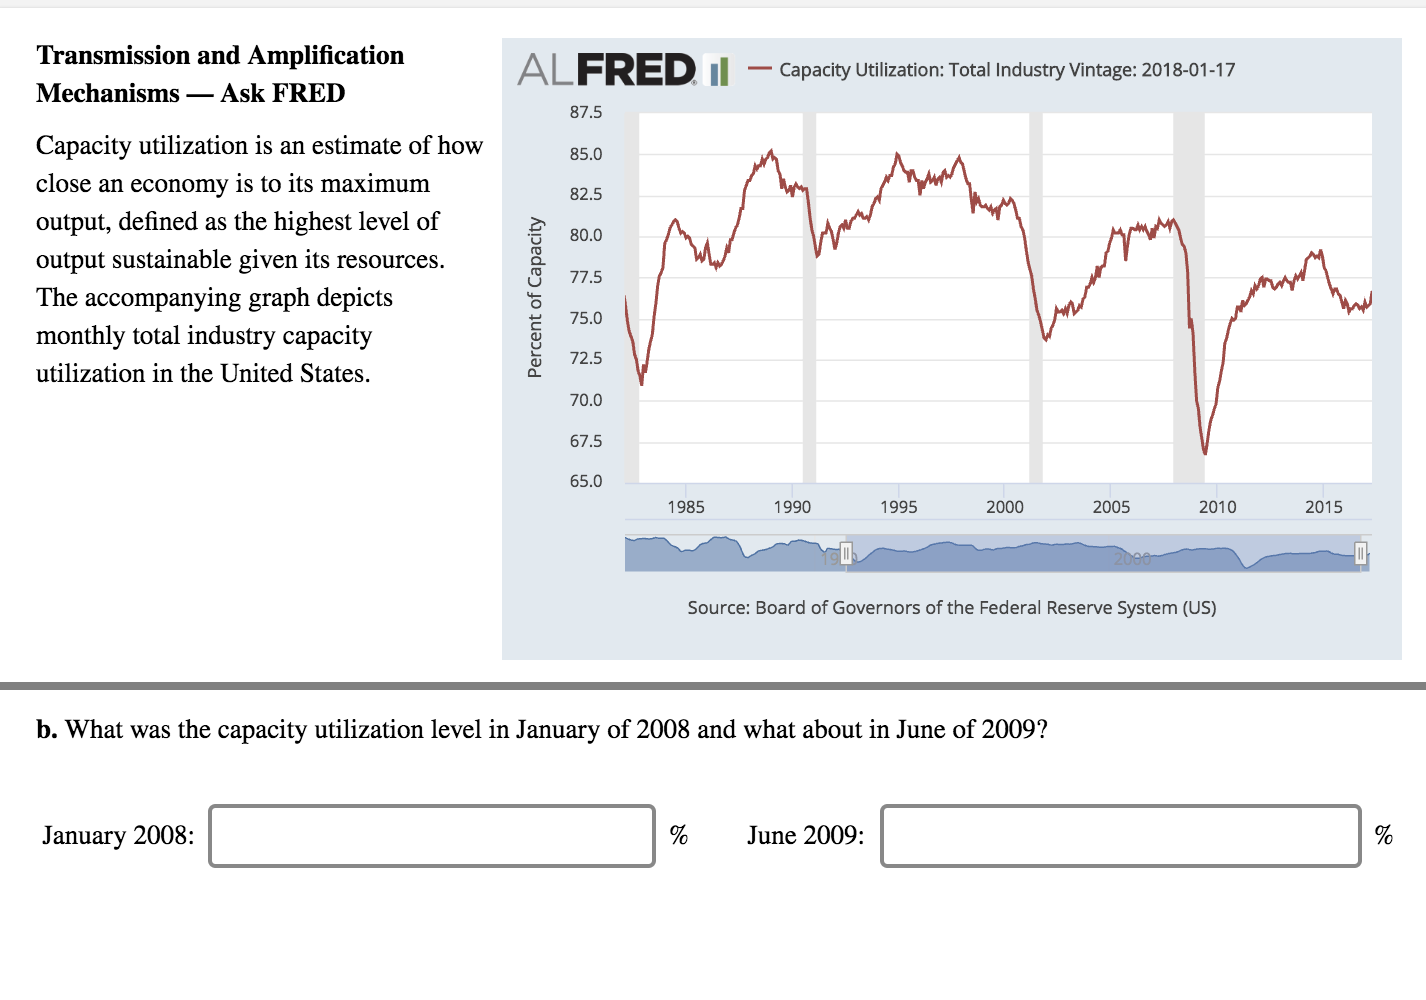 Transmission and Amplification Mechanisms-Ask FRED ALFREDi -capacity utilization: Total Industry Vintage: 2018-01-17 7 87.5 85.0 82.5 80.0 Capacity utilization is an estimate of how close an economy is to its maximum output, defined as the highest level of output sustainable given its resources. The accompanying graph depicts monthly total industry capacity utilization in the United States. 75.0 a 72.5 70.0 67.5 65.0 1985 1990 1995 2000 2005 2010 2015 Source: Board of Governors of the Federal Reserve System (US) b. What was the capacity utilization level in January of 2008 and what about in June of 2009? January 2008: % June 2009: